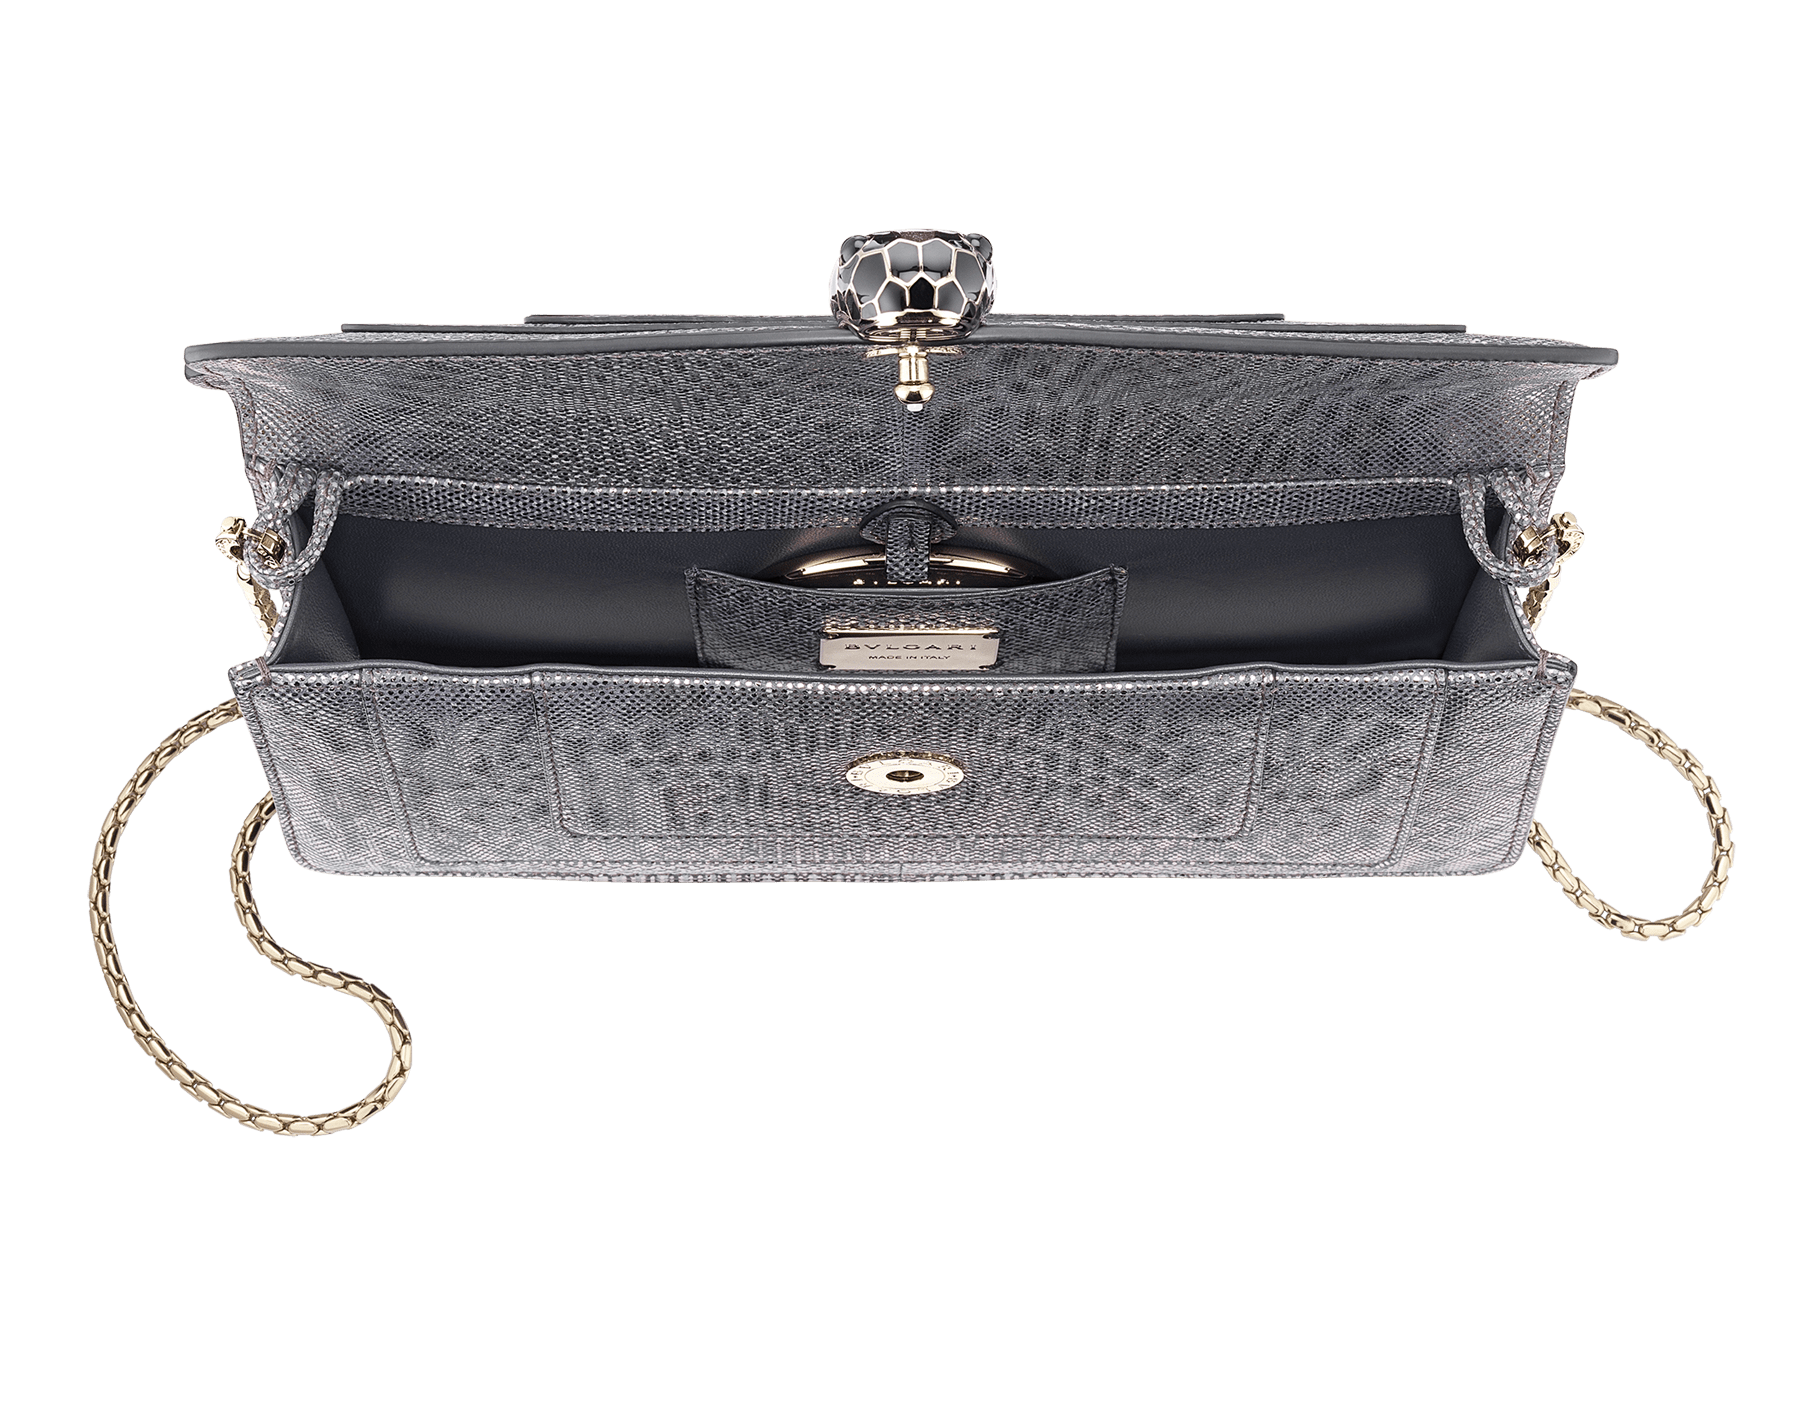 Serpenti Forever shoulder bag in charcoal diamond metallic karung skin. Snakehead closure in light gold plated brass decorated with shiny black and glitter charcoal diamond enamel, and black onyx eyes. 287945 image 4